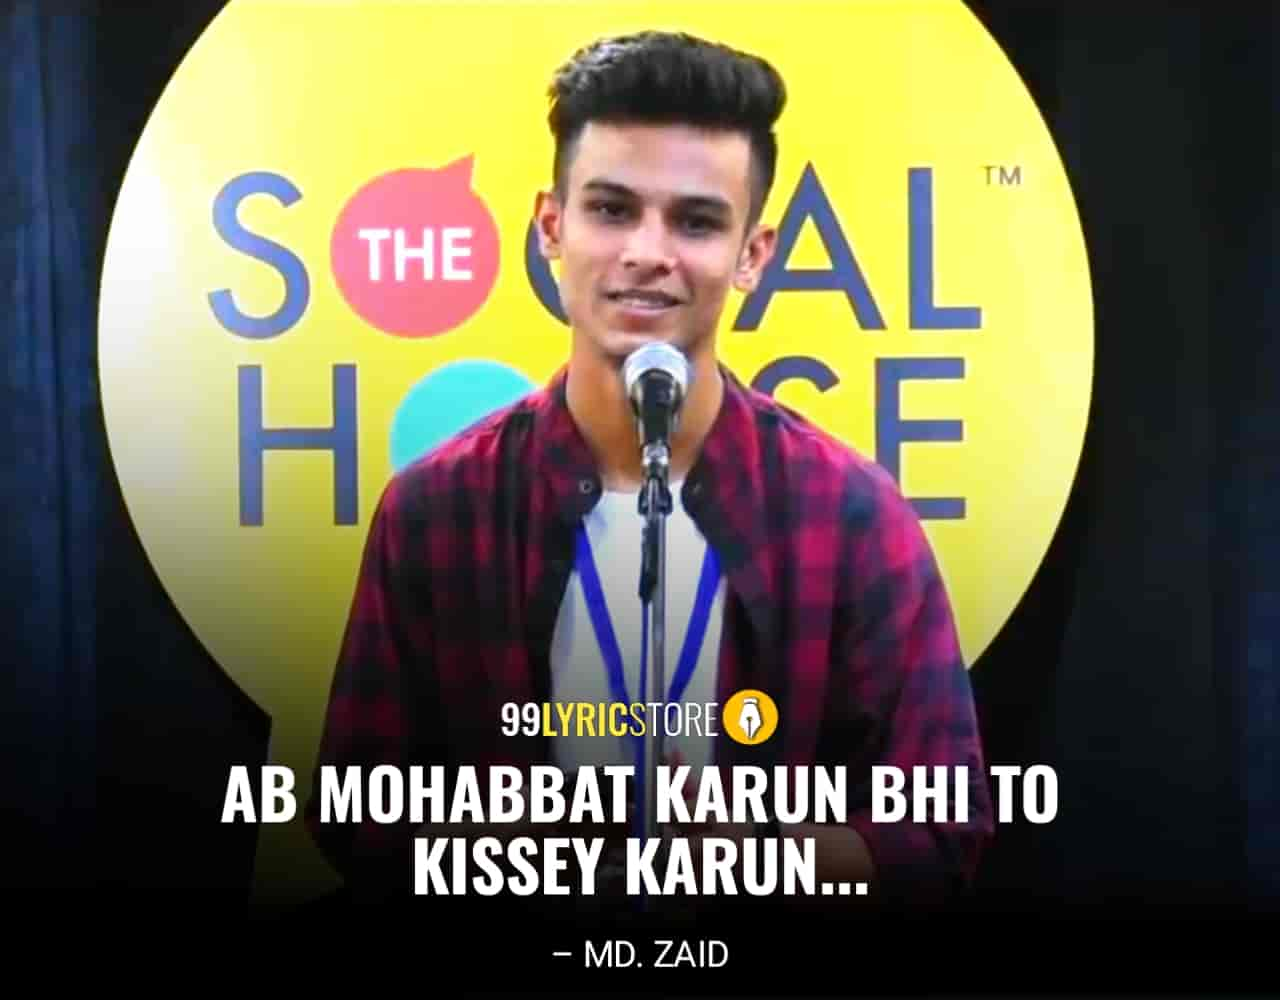 Ab Mohabbat Karun Bhi To Kissey Karun Poetry :- This beautiful love poetry  'Ab Mohabbat Karun Bhi To Kissey Karun' for The Social House is presented by Md. Zaid and also written by him which is very beautiful a piece.